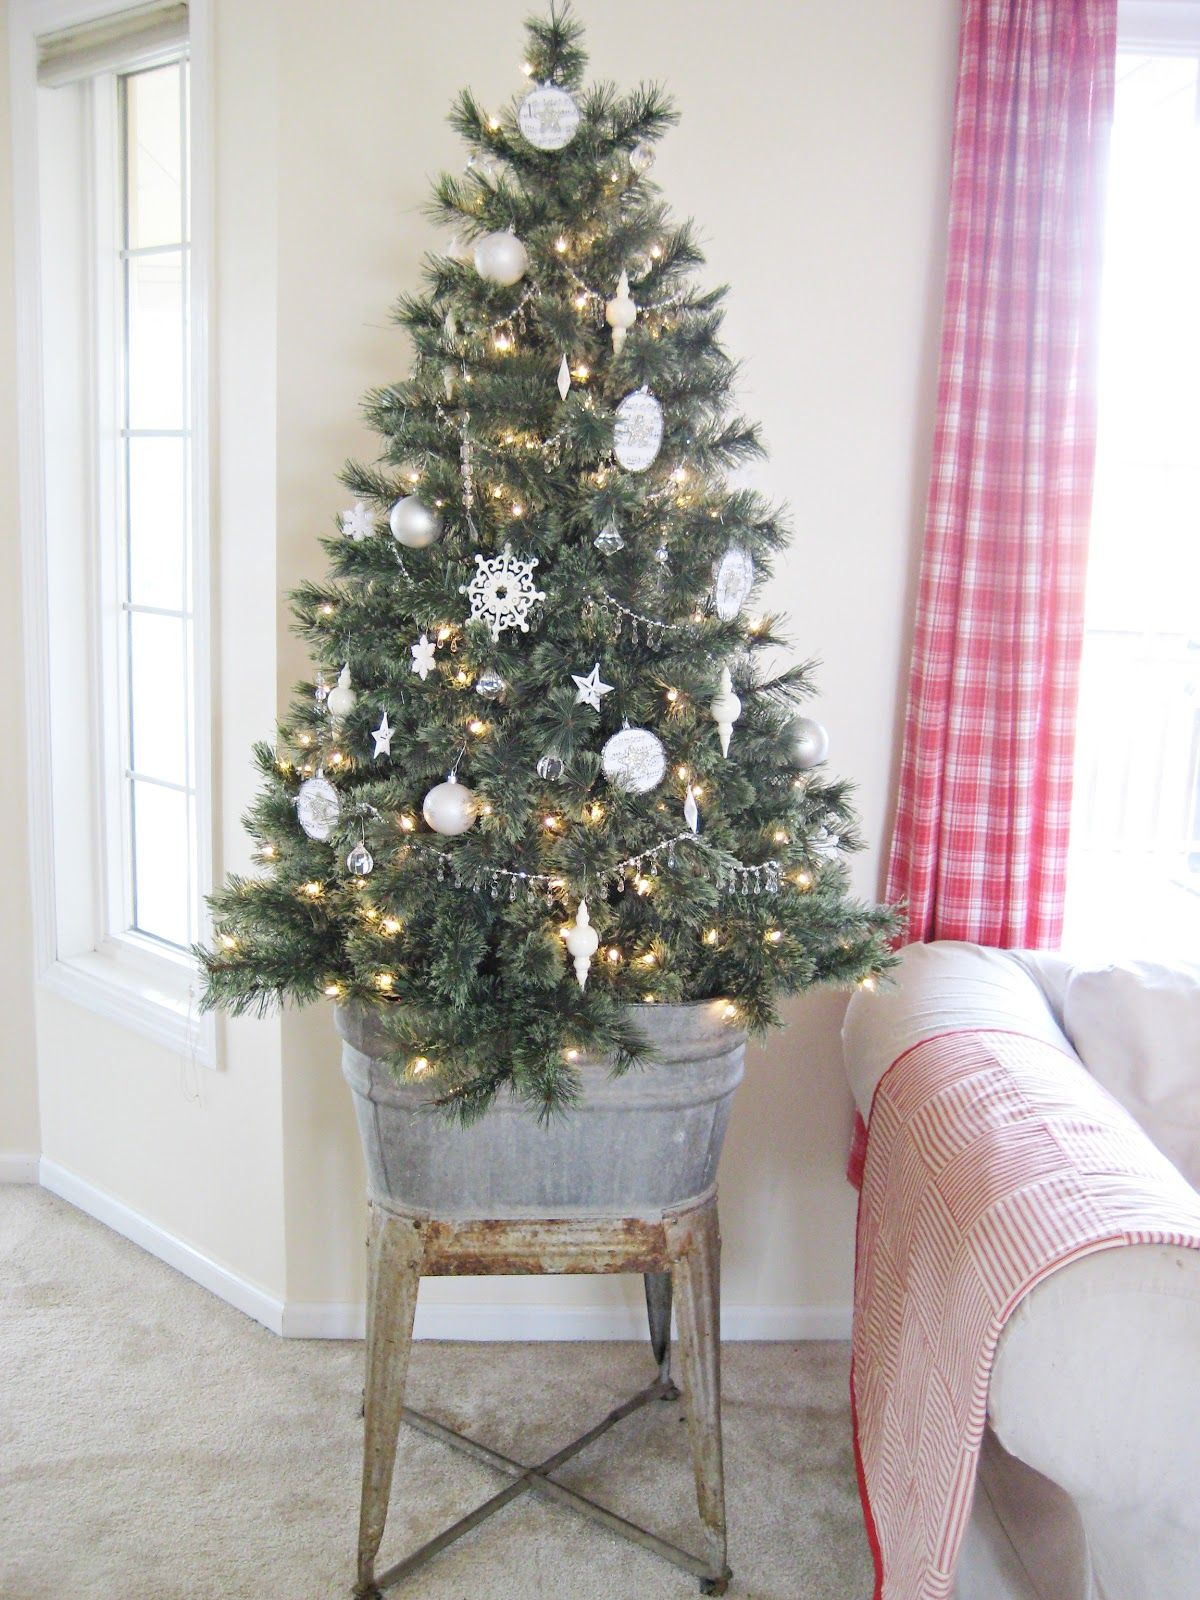 Christmas tree ideas for small spaces - 20 Best Holiday Decorating Ideas For Small Spaces Christmas Decor For Small Space Living